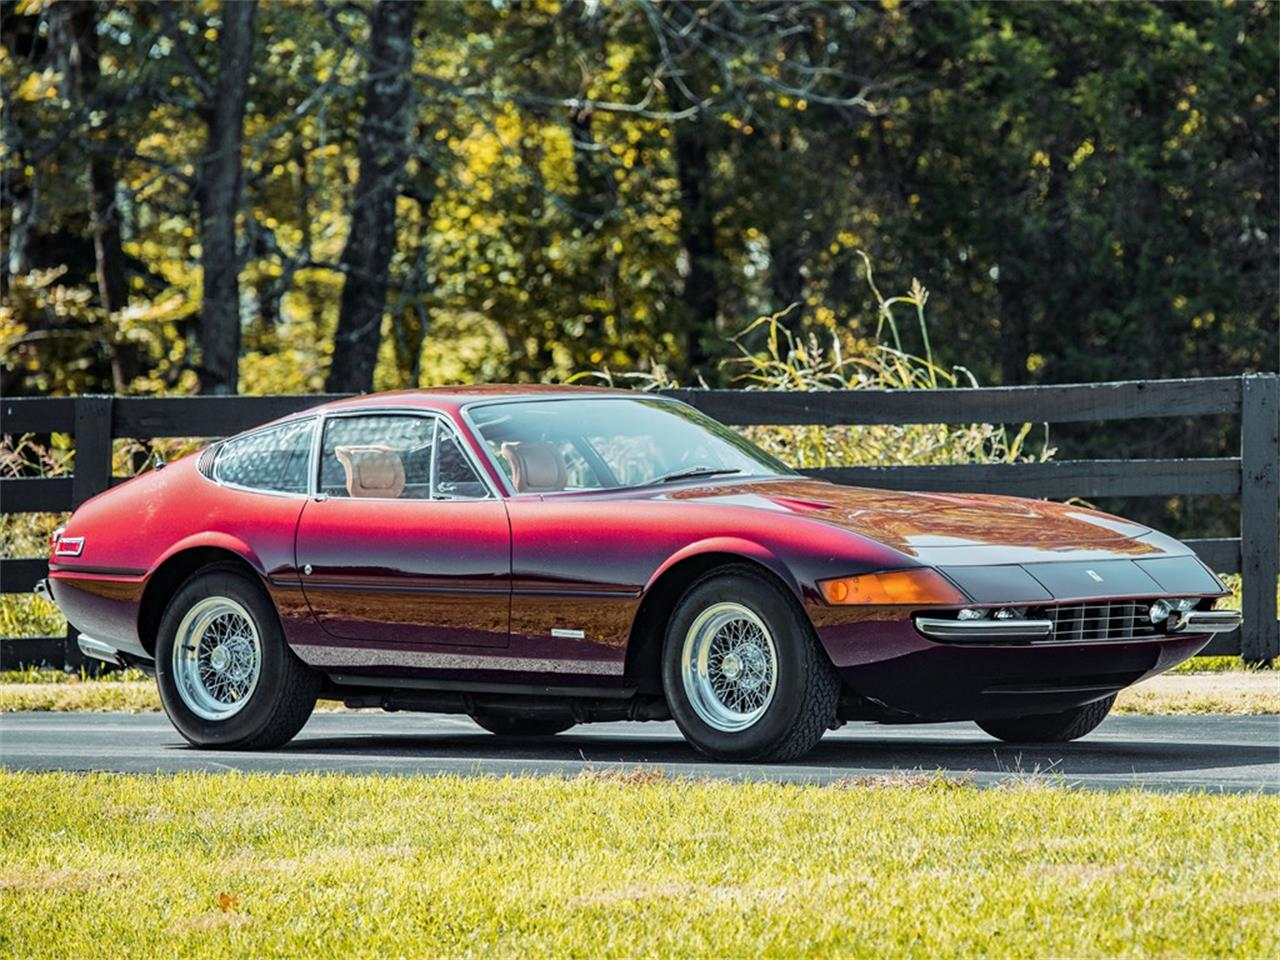 Large Picture of '72 365 GTB/4 Daytona Berlinetta Auction Vehicle Offered by RM Sotheby's - OW0C